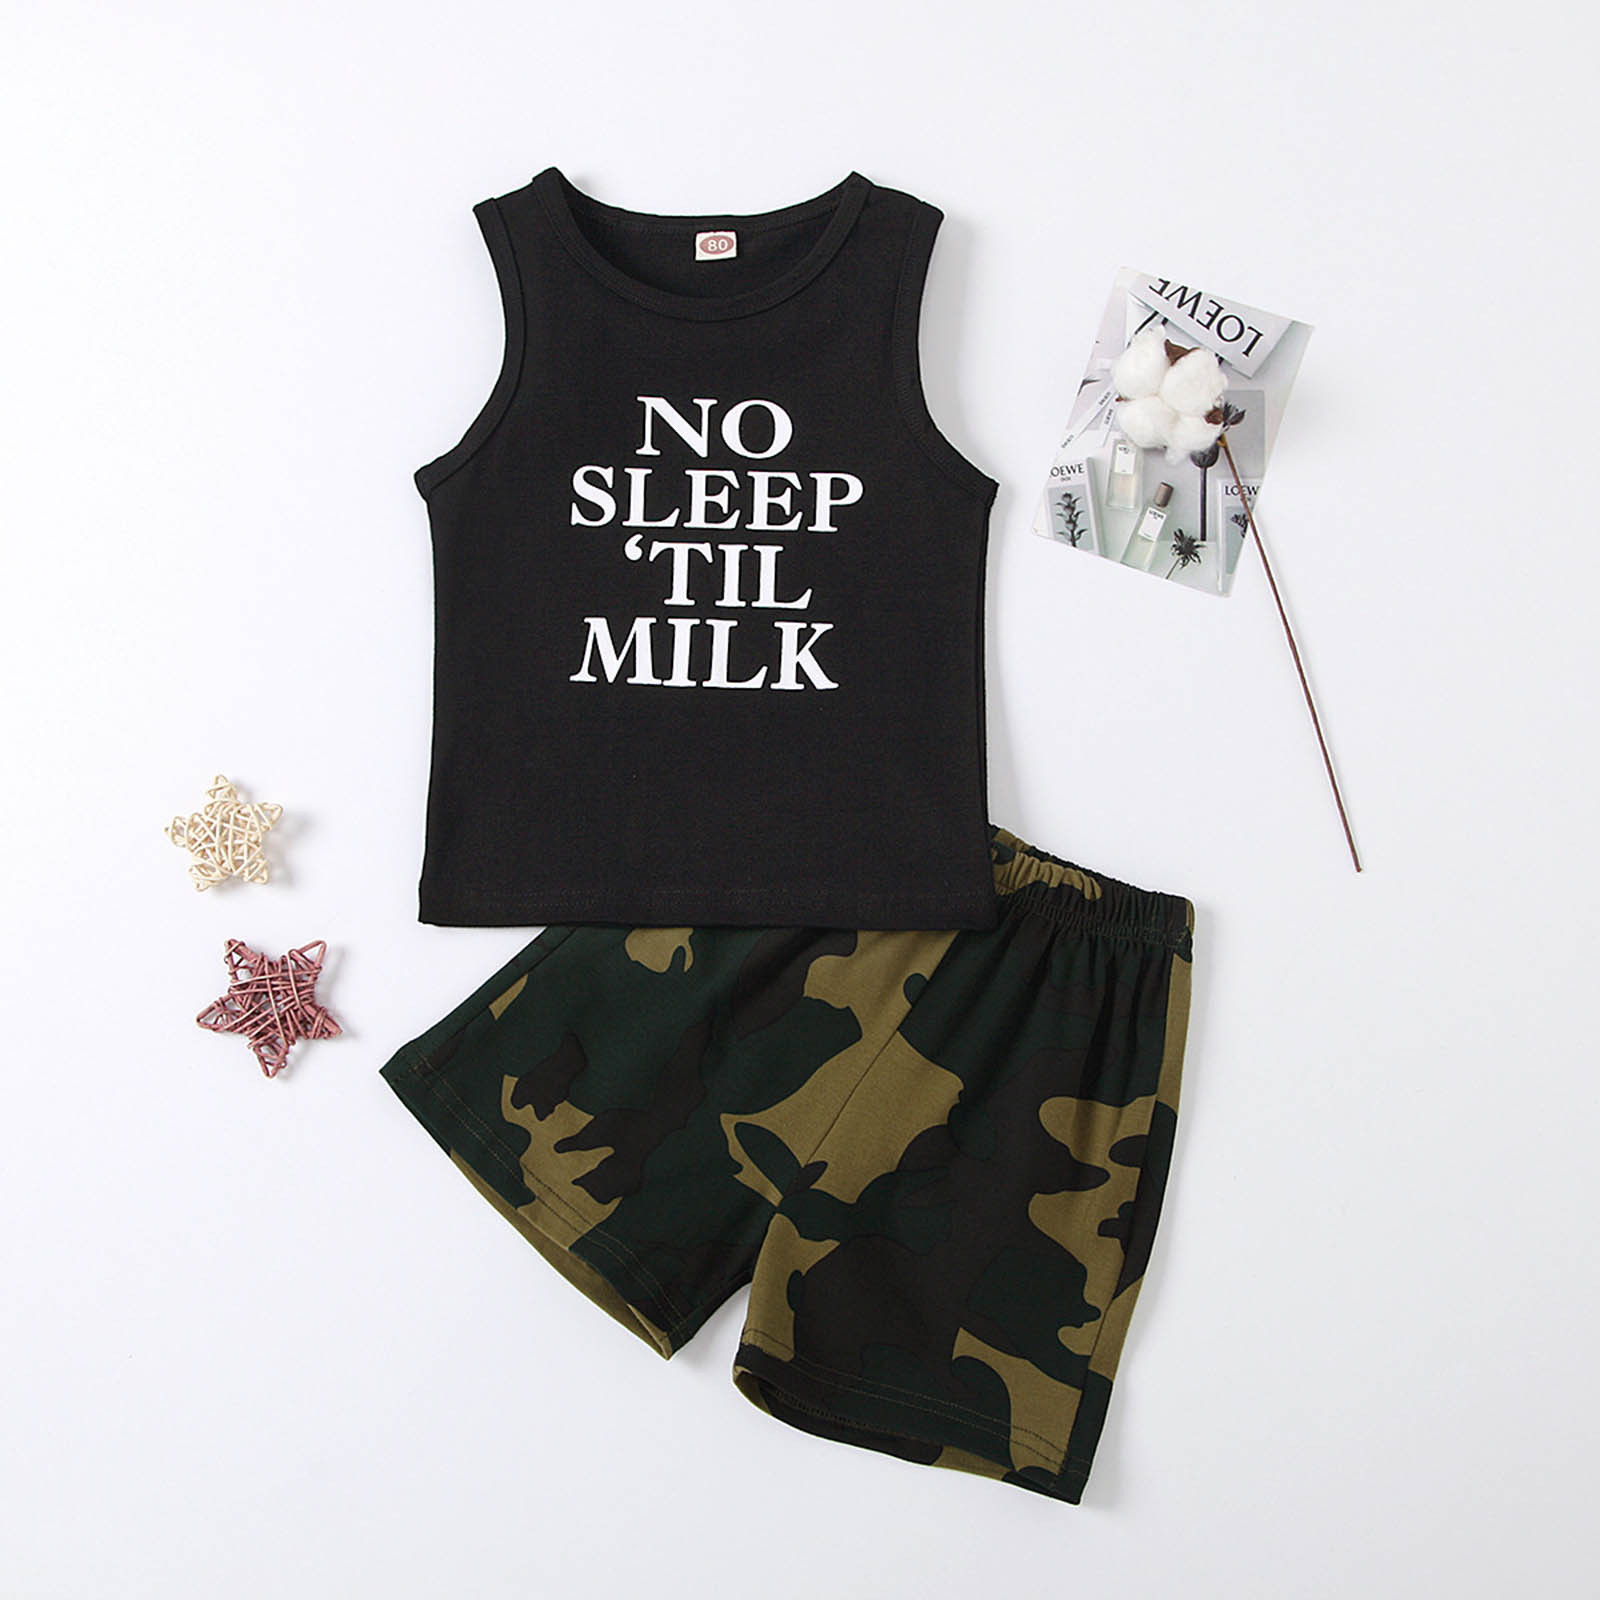 Newborn Infant Baby Boys Sets Fashion Sleeveless Letter Print Vest Tops Camouflage Shorts Outfits Set Summer Baby Boy Clothes